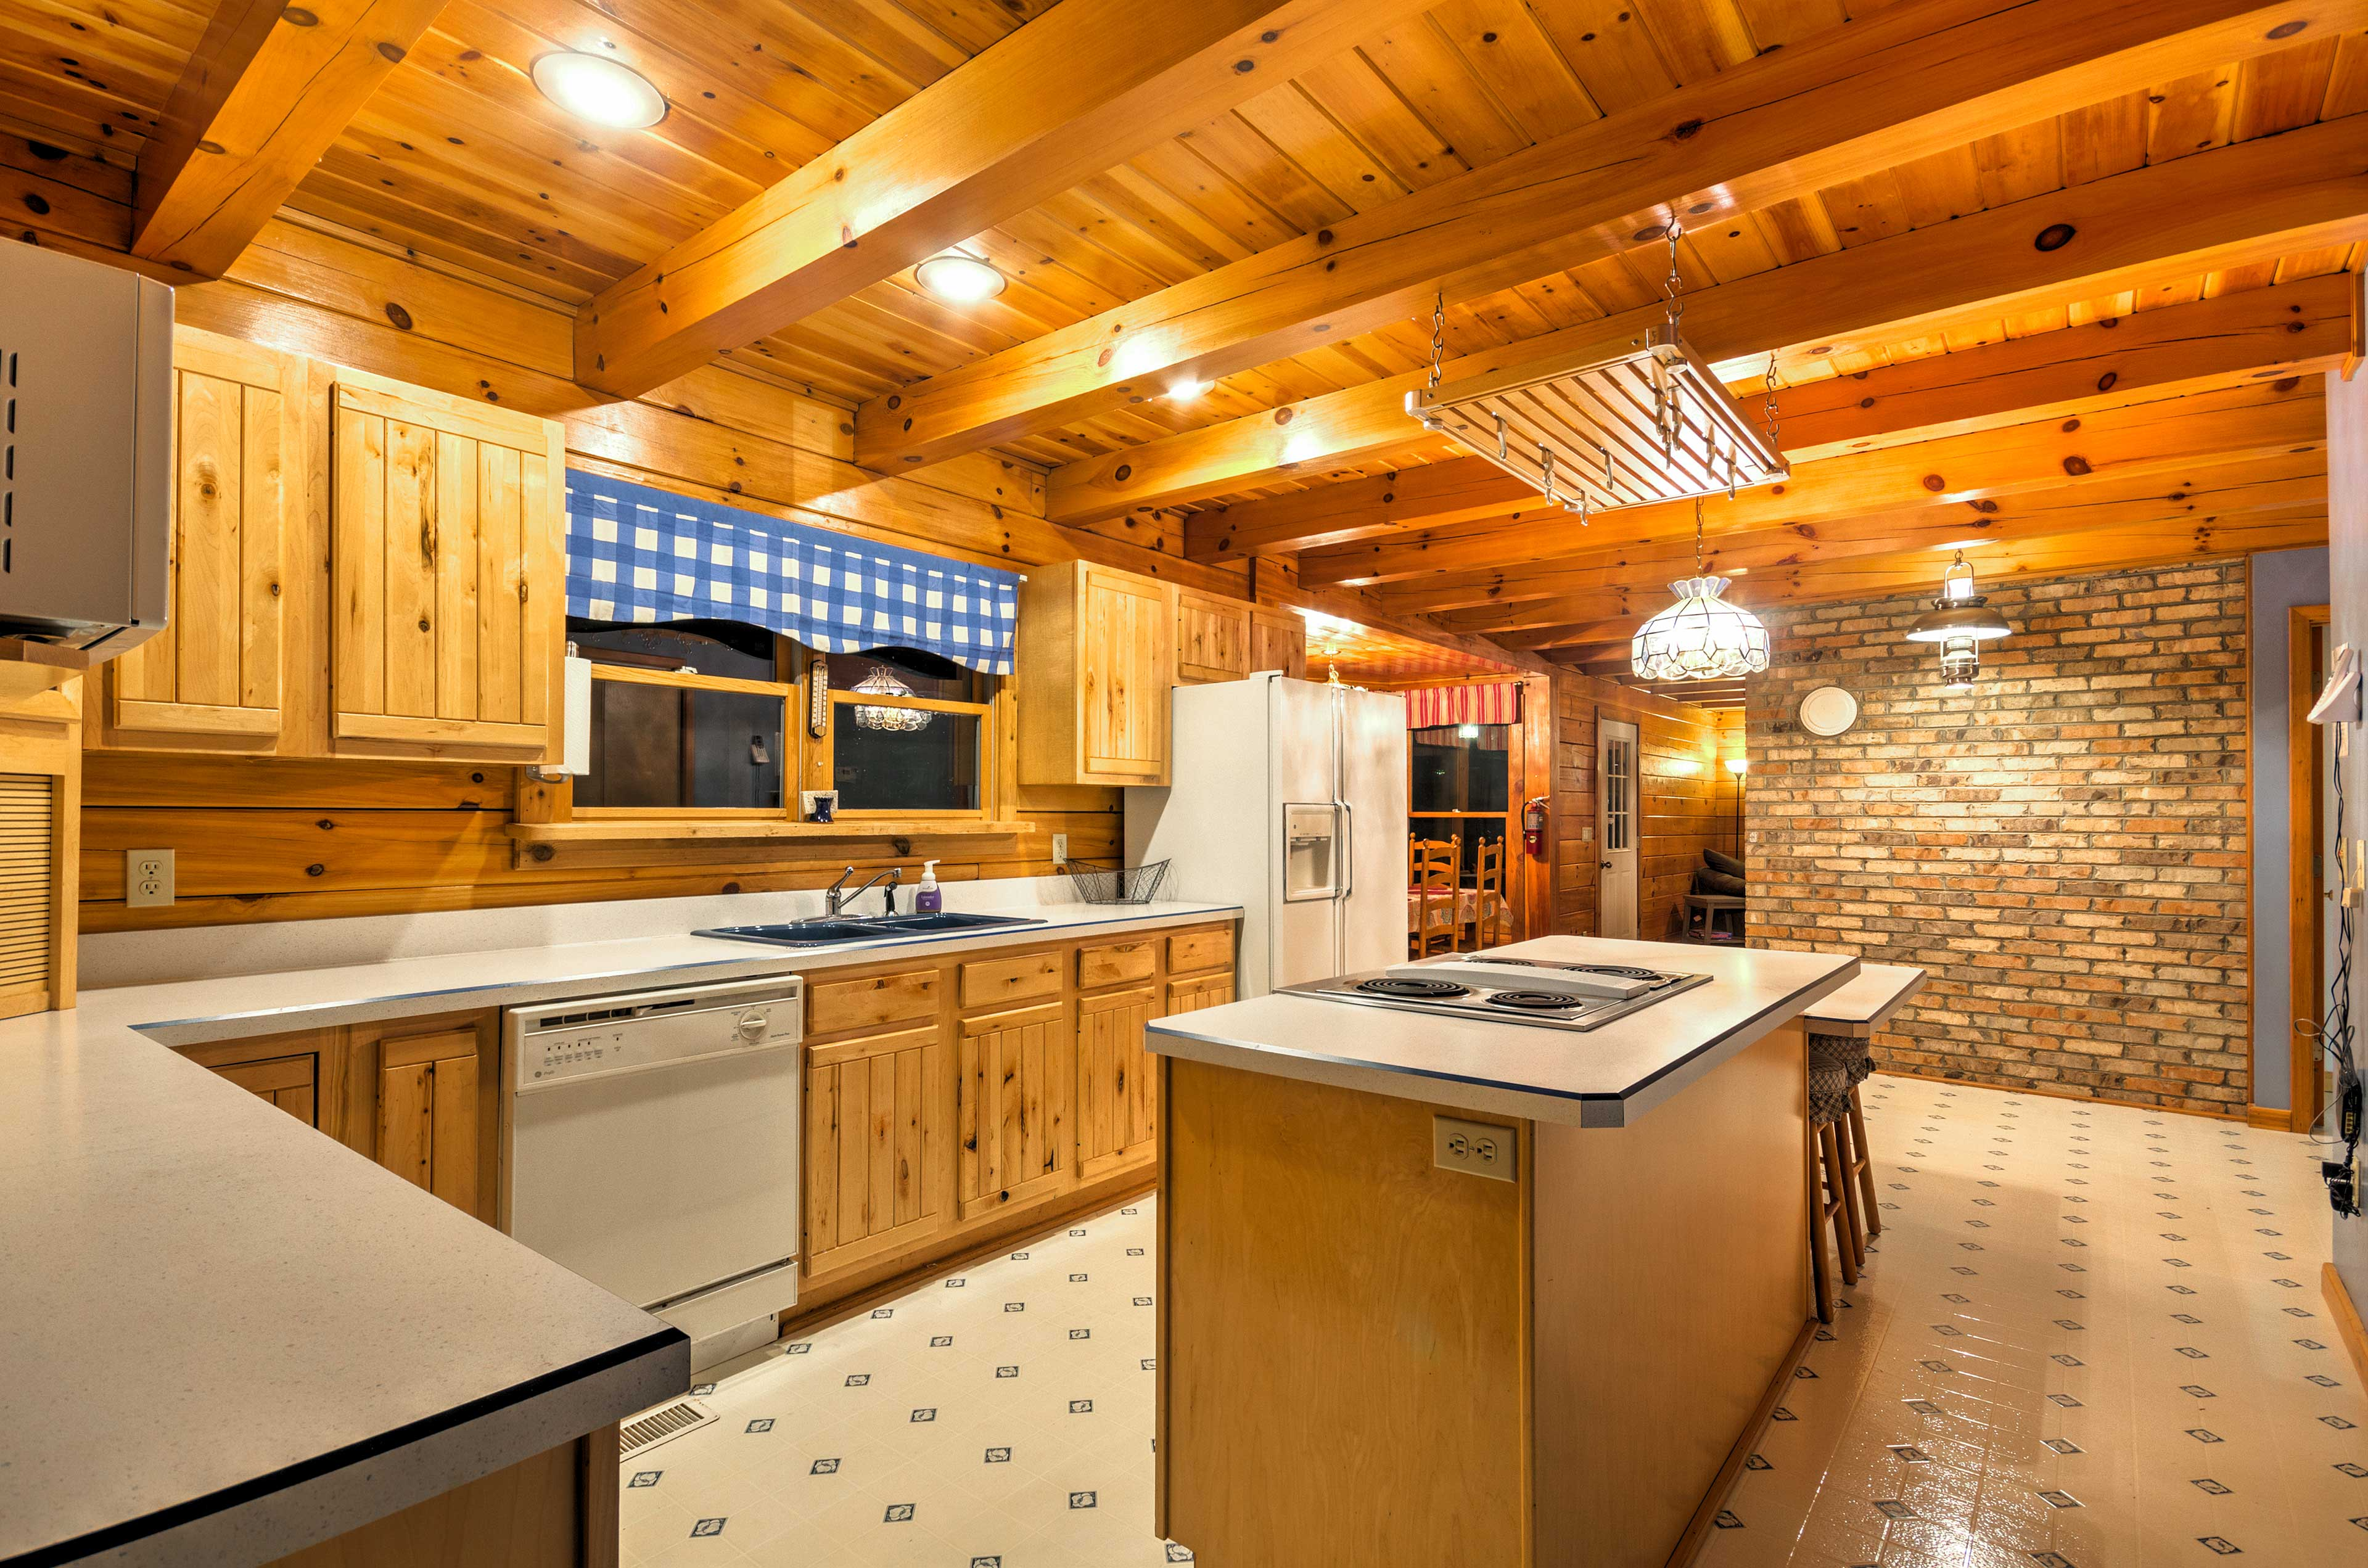 Whip up gourmet recipes in the fully equipped kitchen.